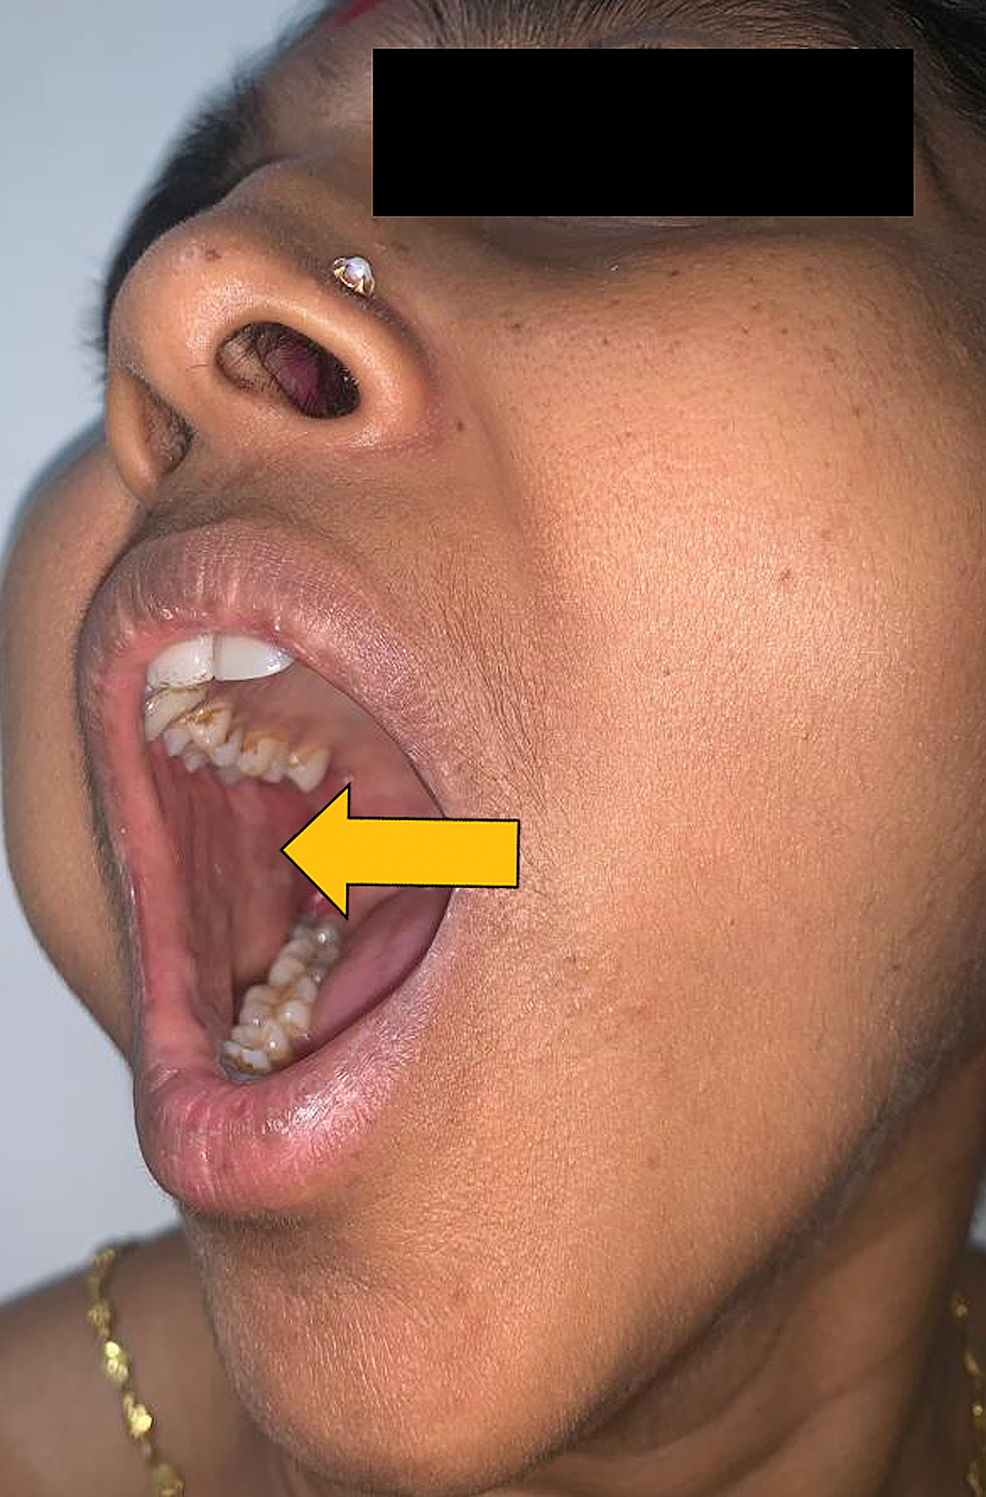 Intraoral-view-reveals-intact-healthy-mucosa-over-the-mass.